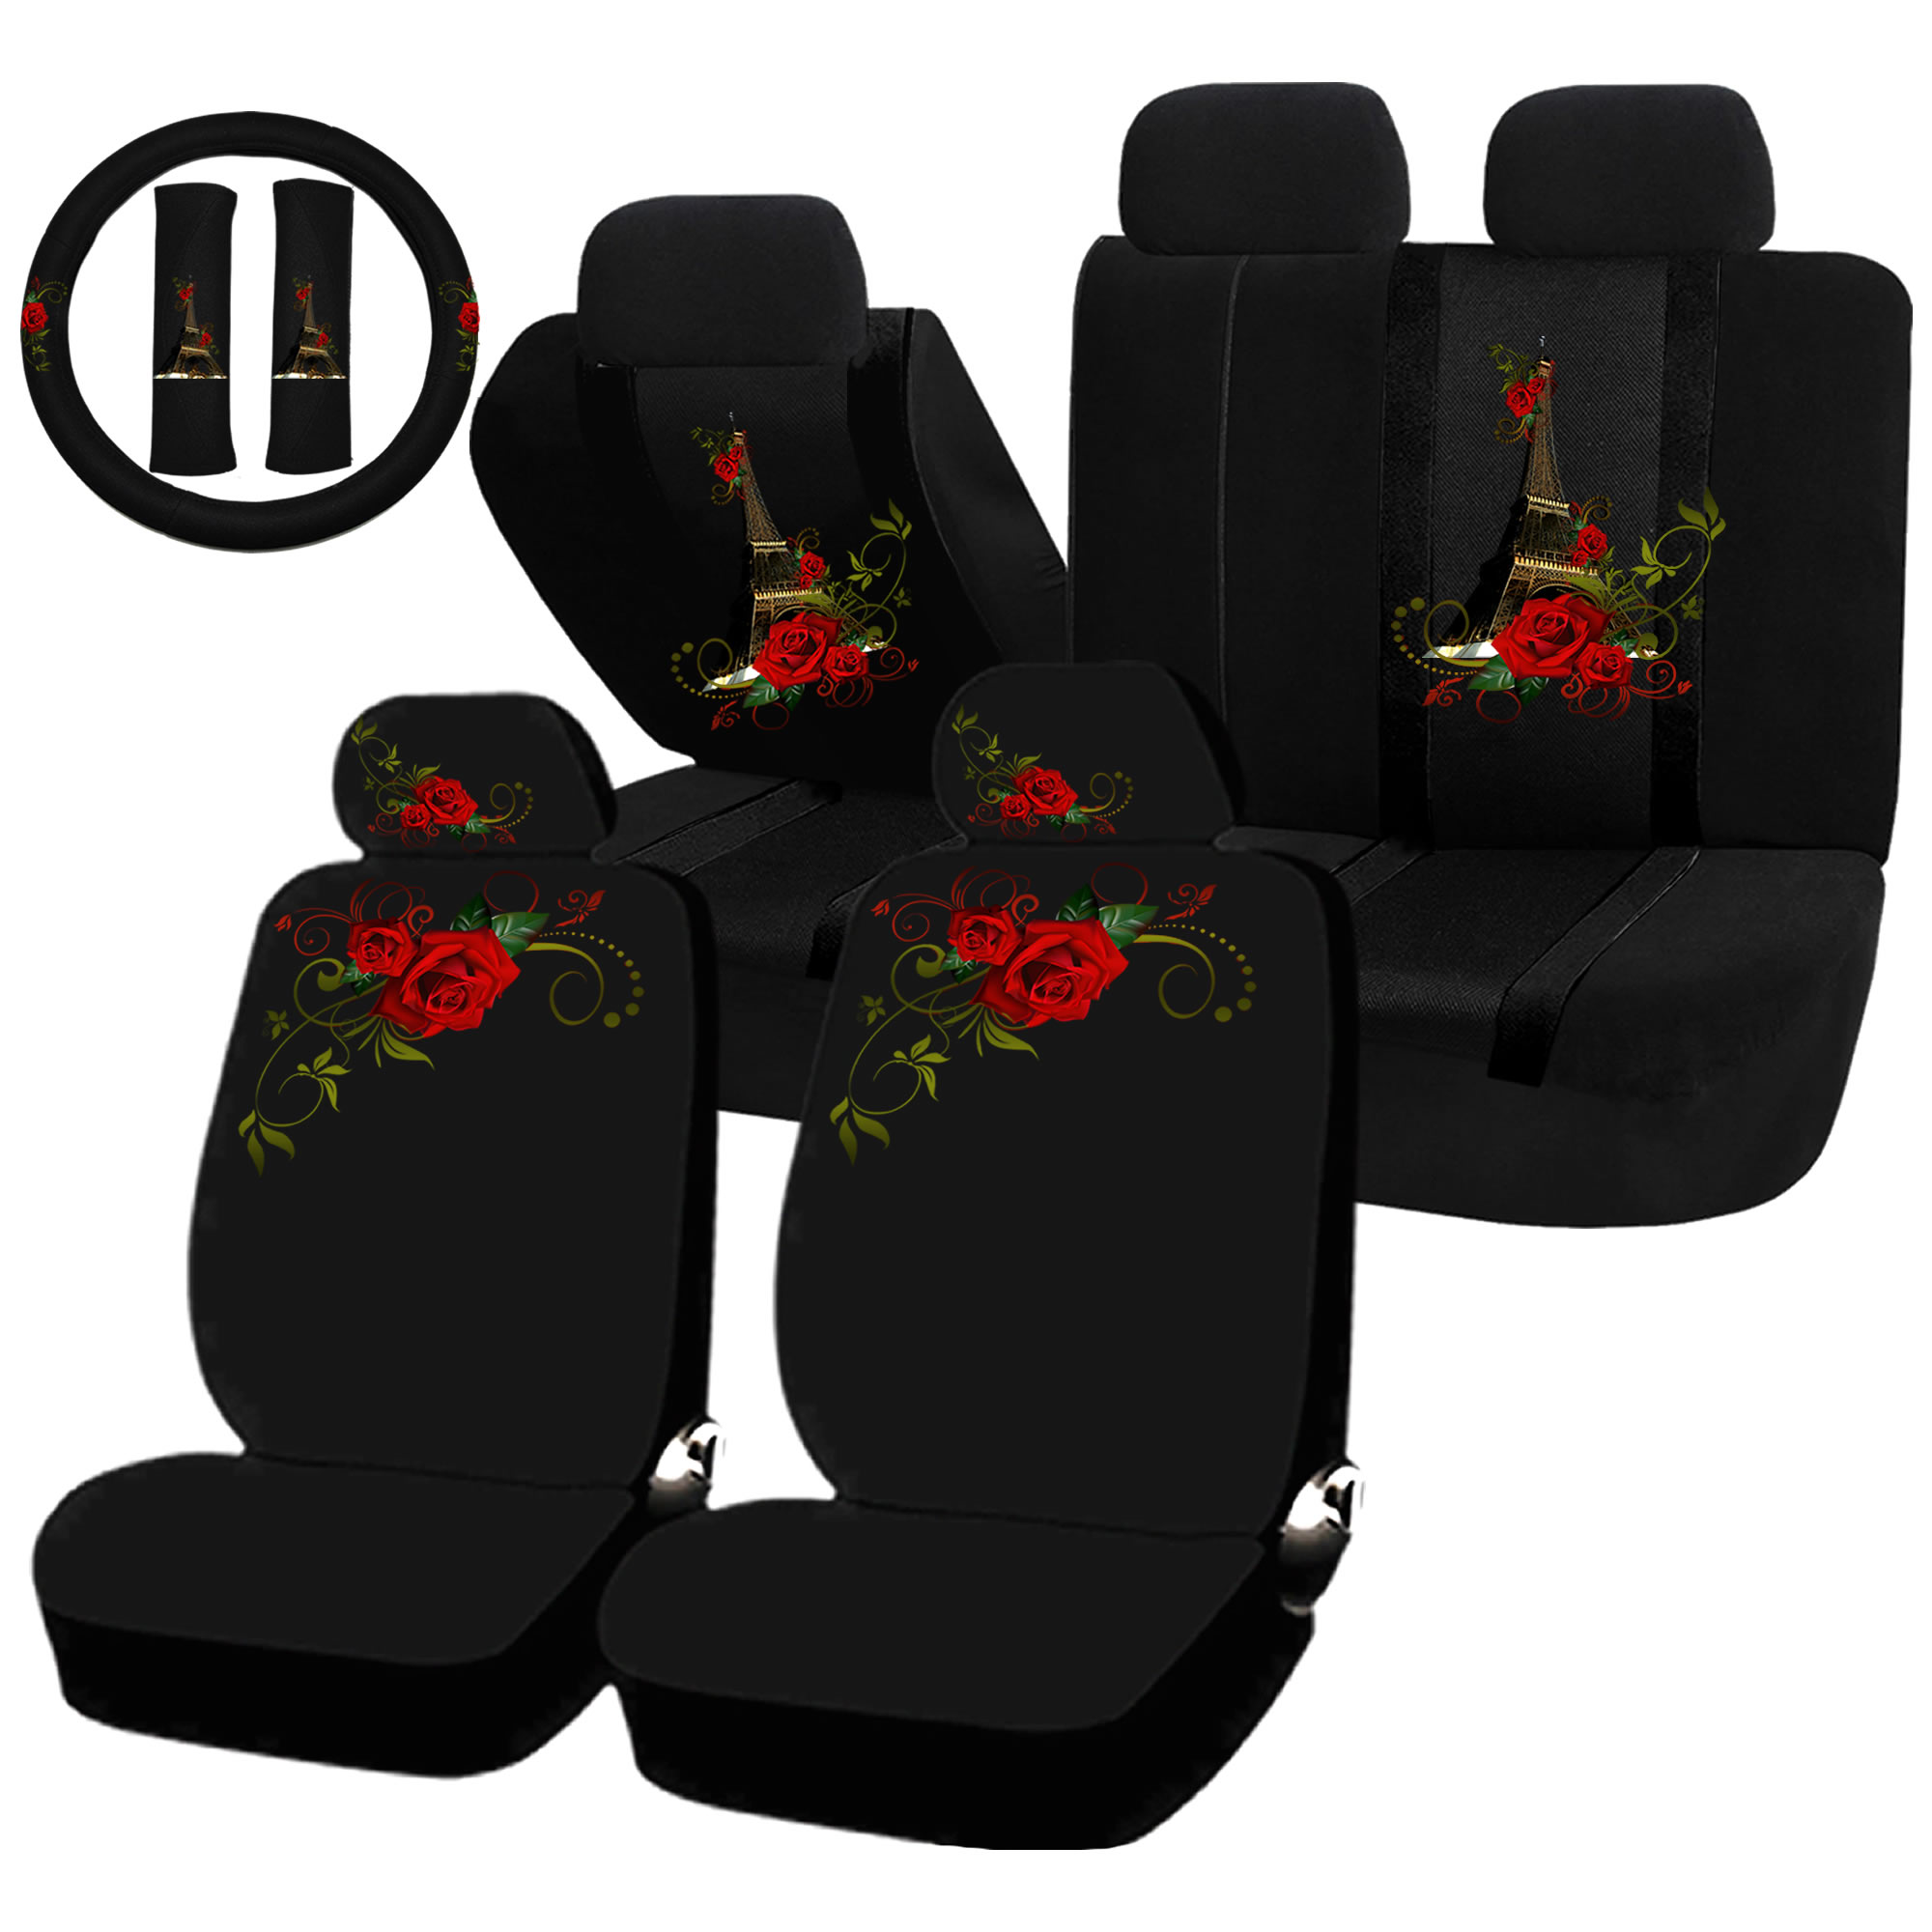 22PC Paris in Love Eiffel Tower Red Flower Seat Covers & Steering Wheel Set Universal Car Truck SUV